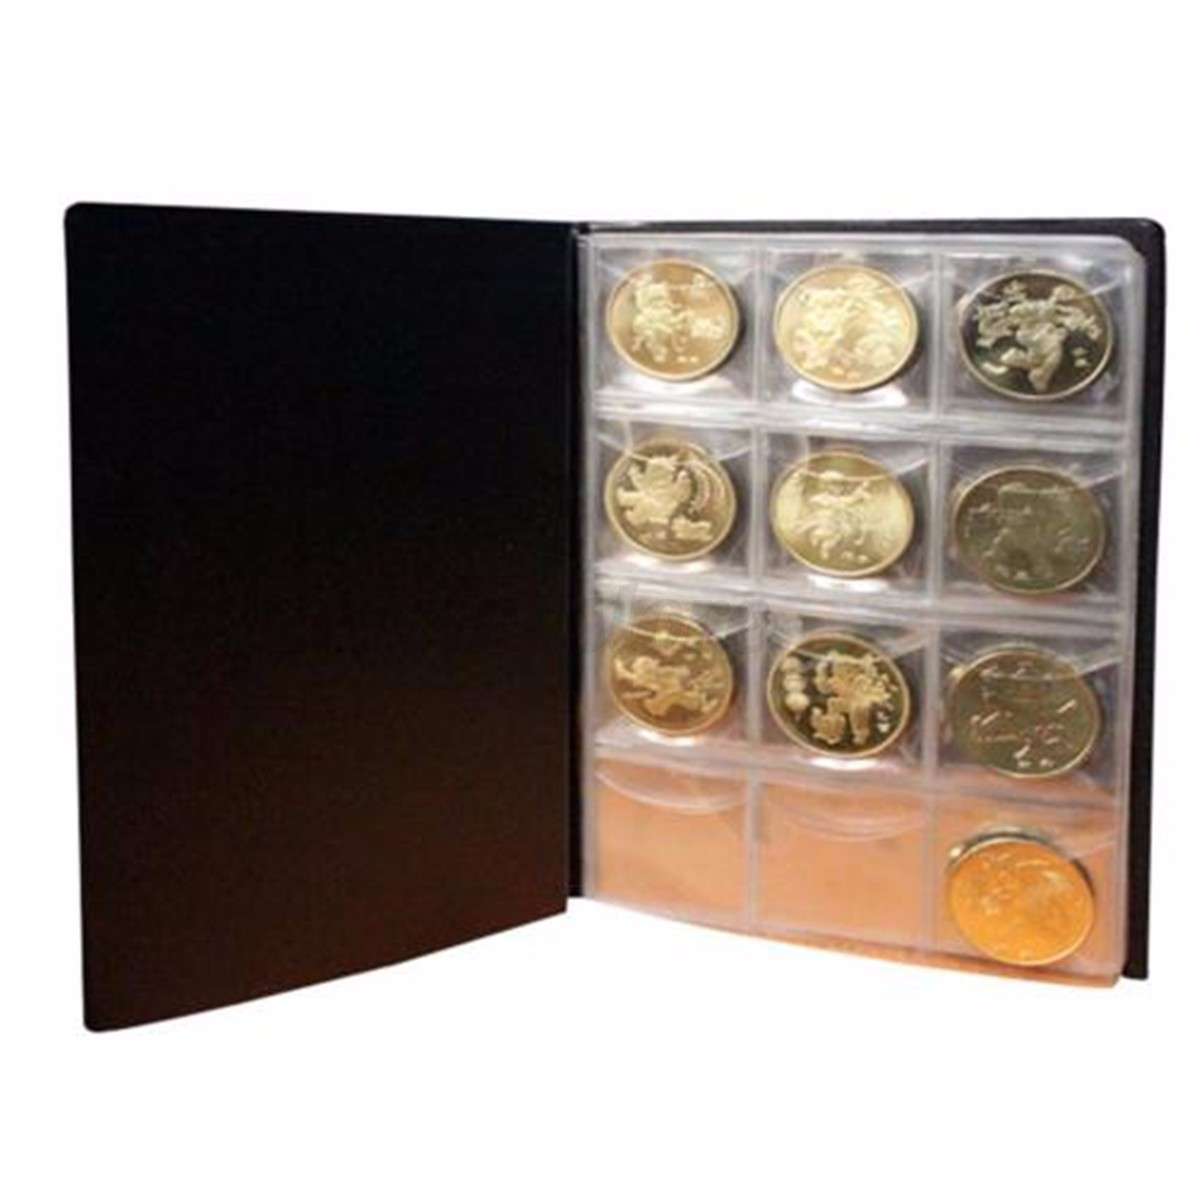 35a4c41cd0 Coin Album Binder for Case 120 seater Coin Money Collection Storage ...